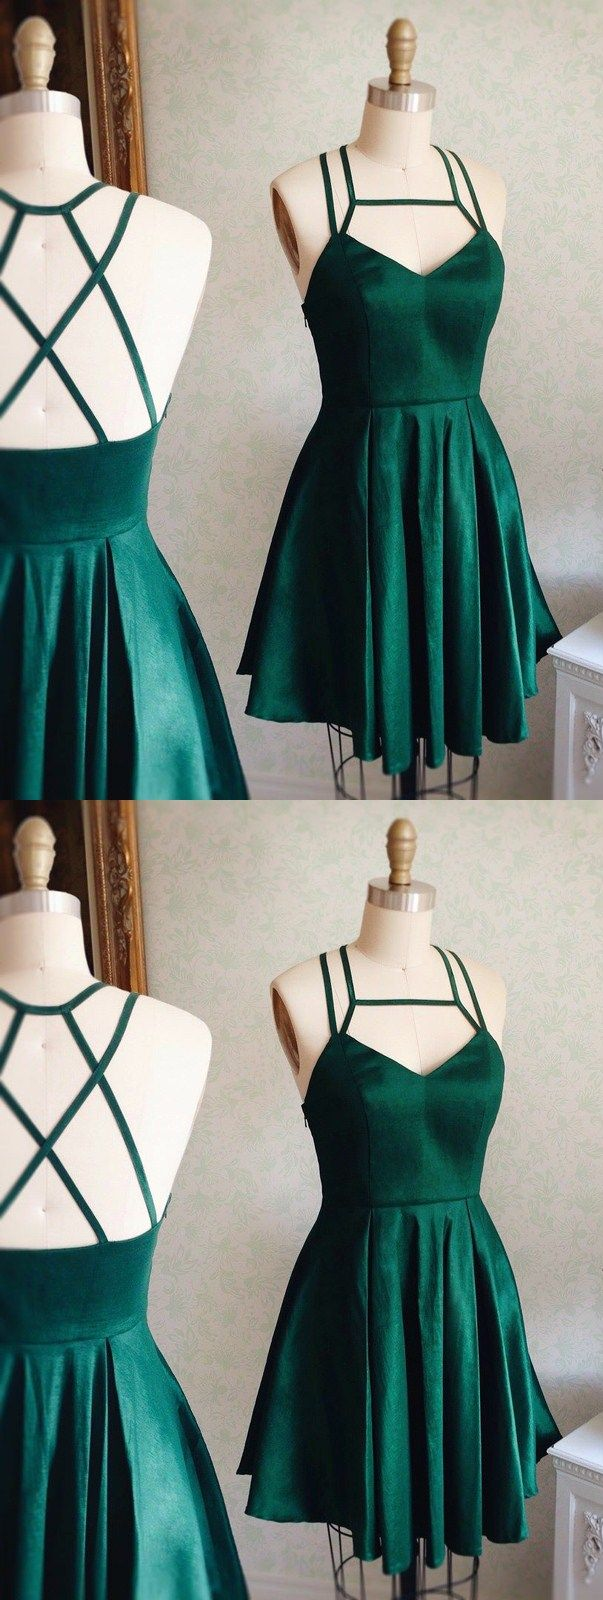 Aline square sleeveless dark green taffeta short homecoming dress